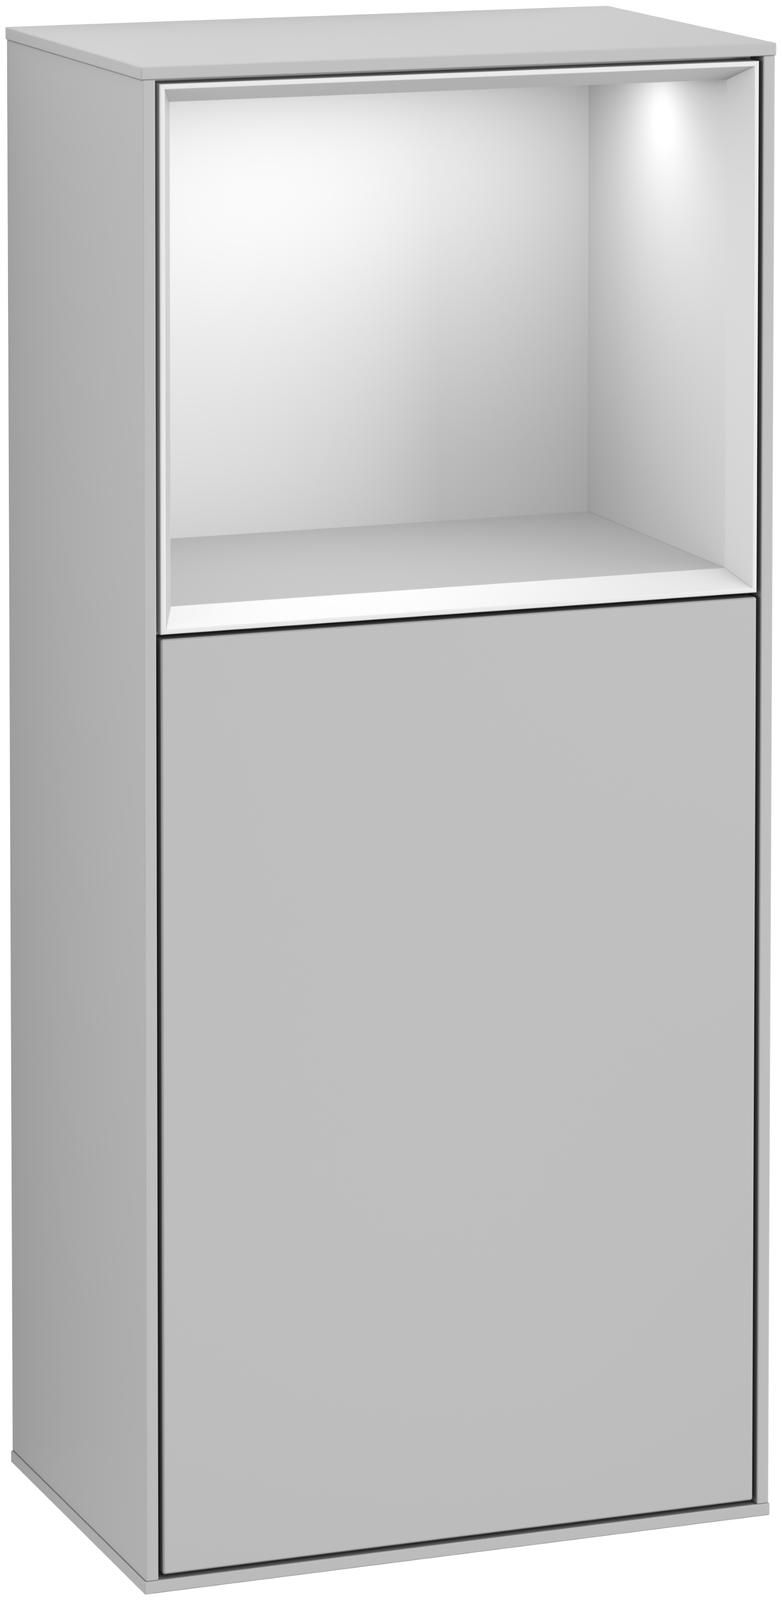 Villeroy & Boch Finion G53 Seitenschrank mit Regalelement 1 Tür Anschlag rechts LED-Beleuchtung B:41,8xH:93,6xT:27cm Front, Korpus: Light Grey Matt, Regal: Weiß Matt Soft Grey G530MTGJ